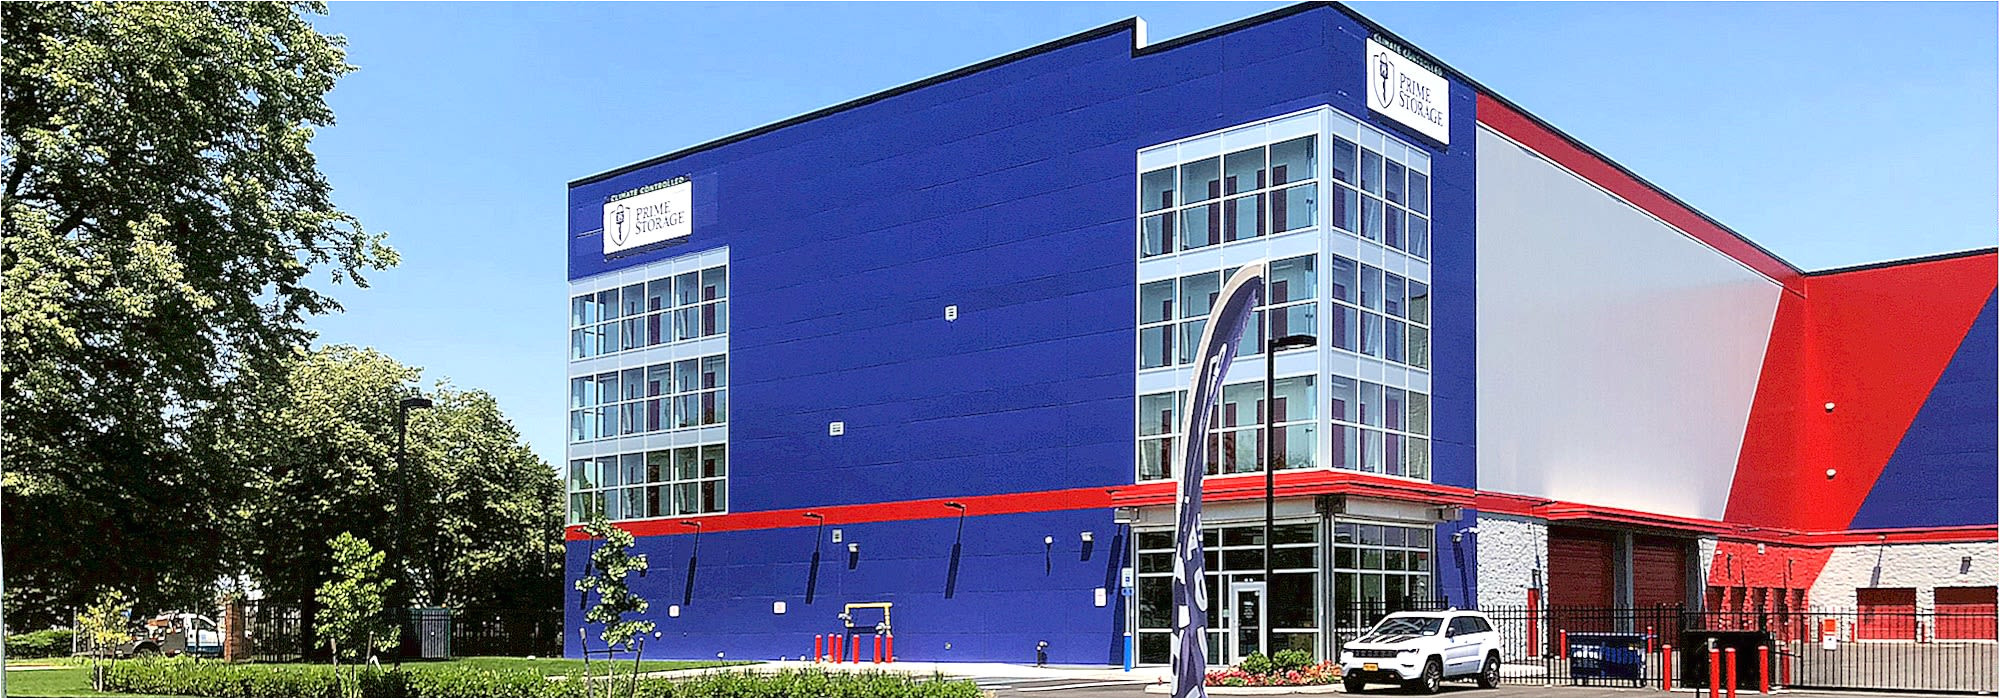 exterior image of prime storage in queens